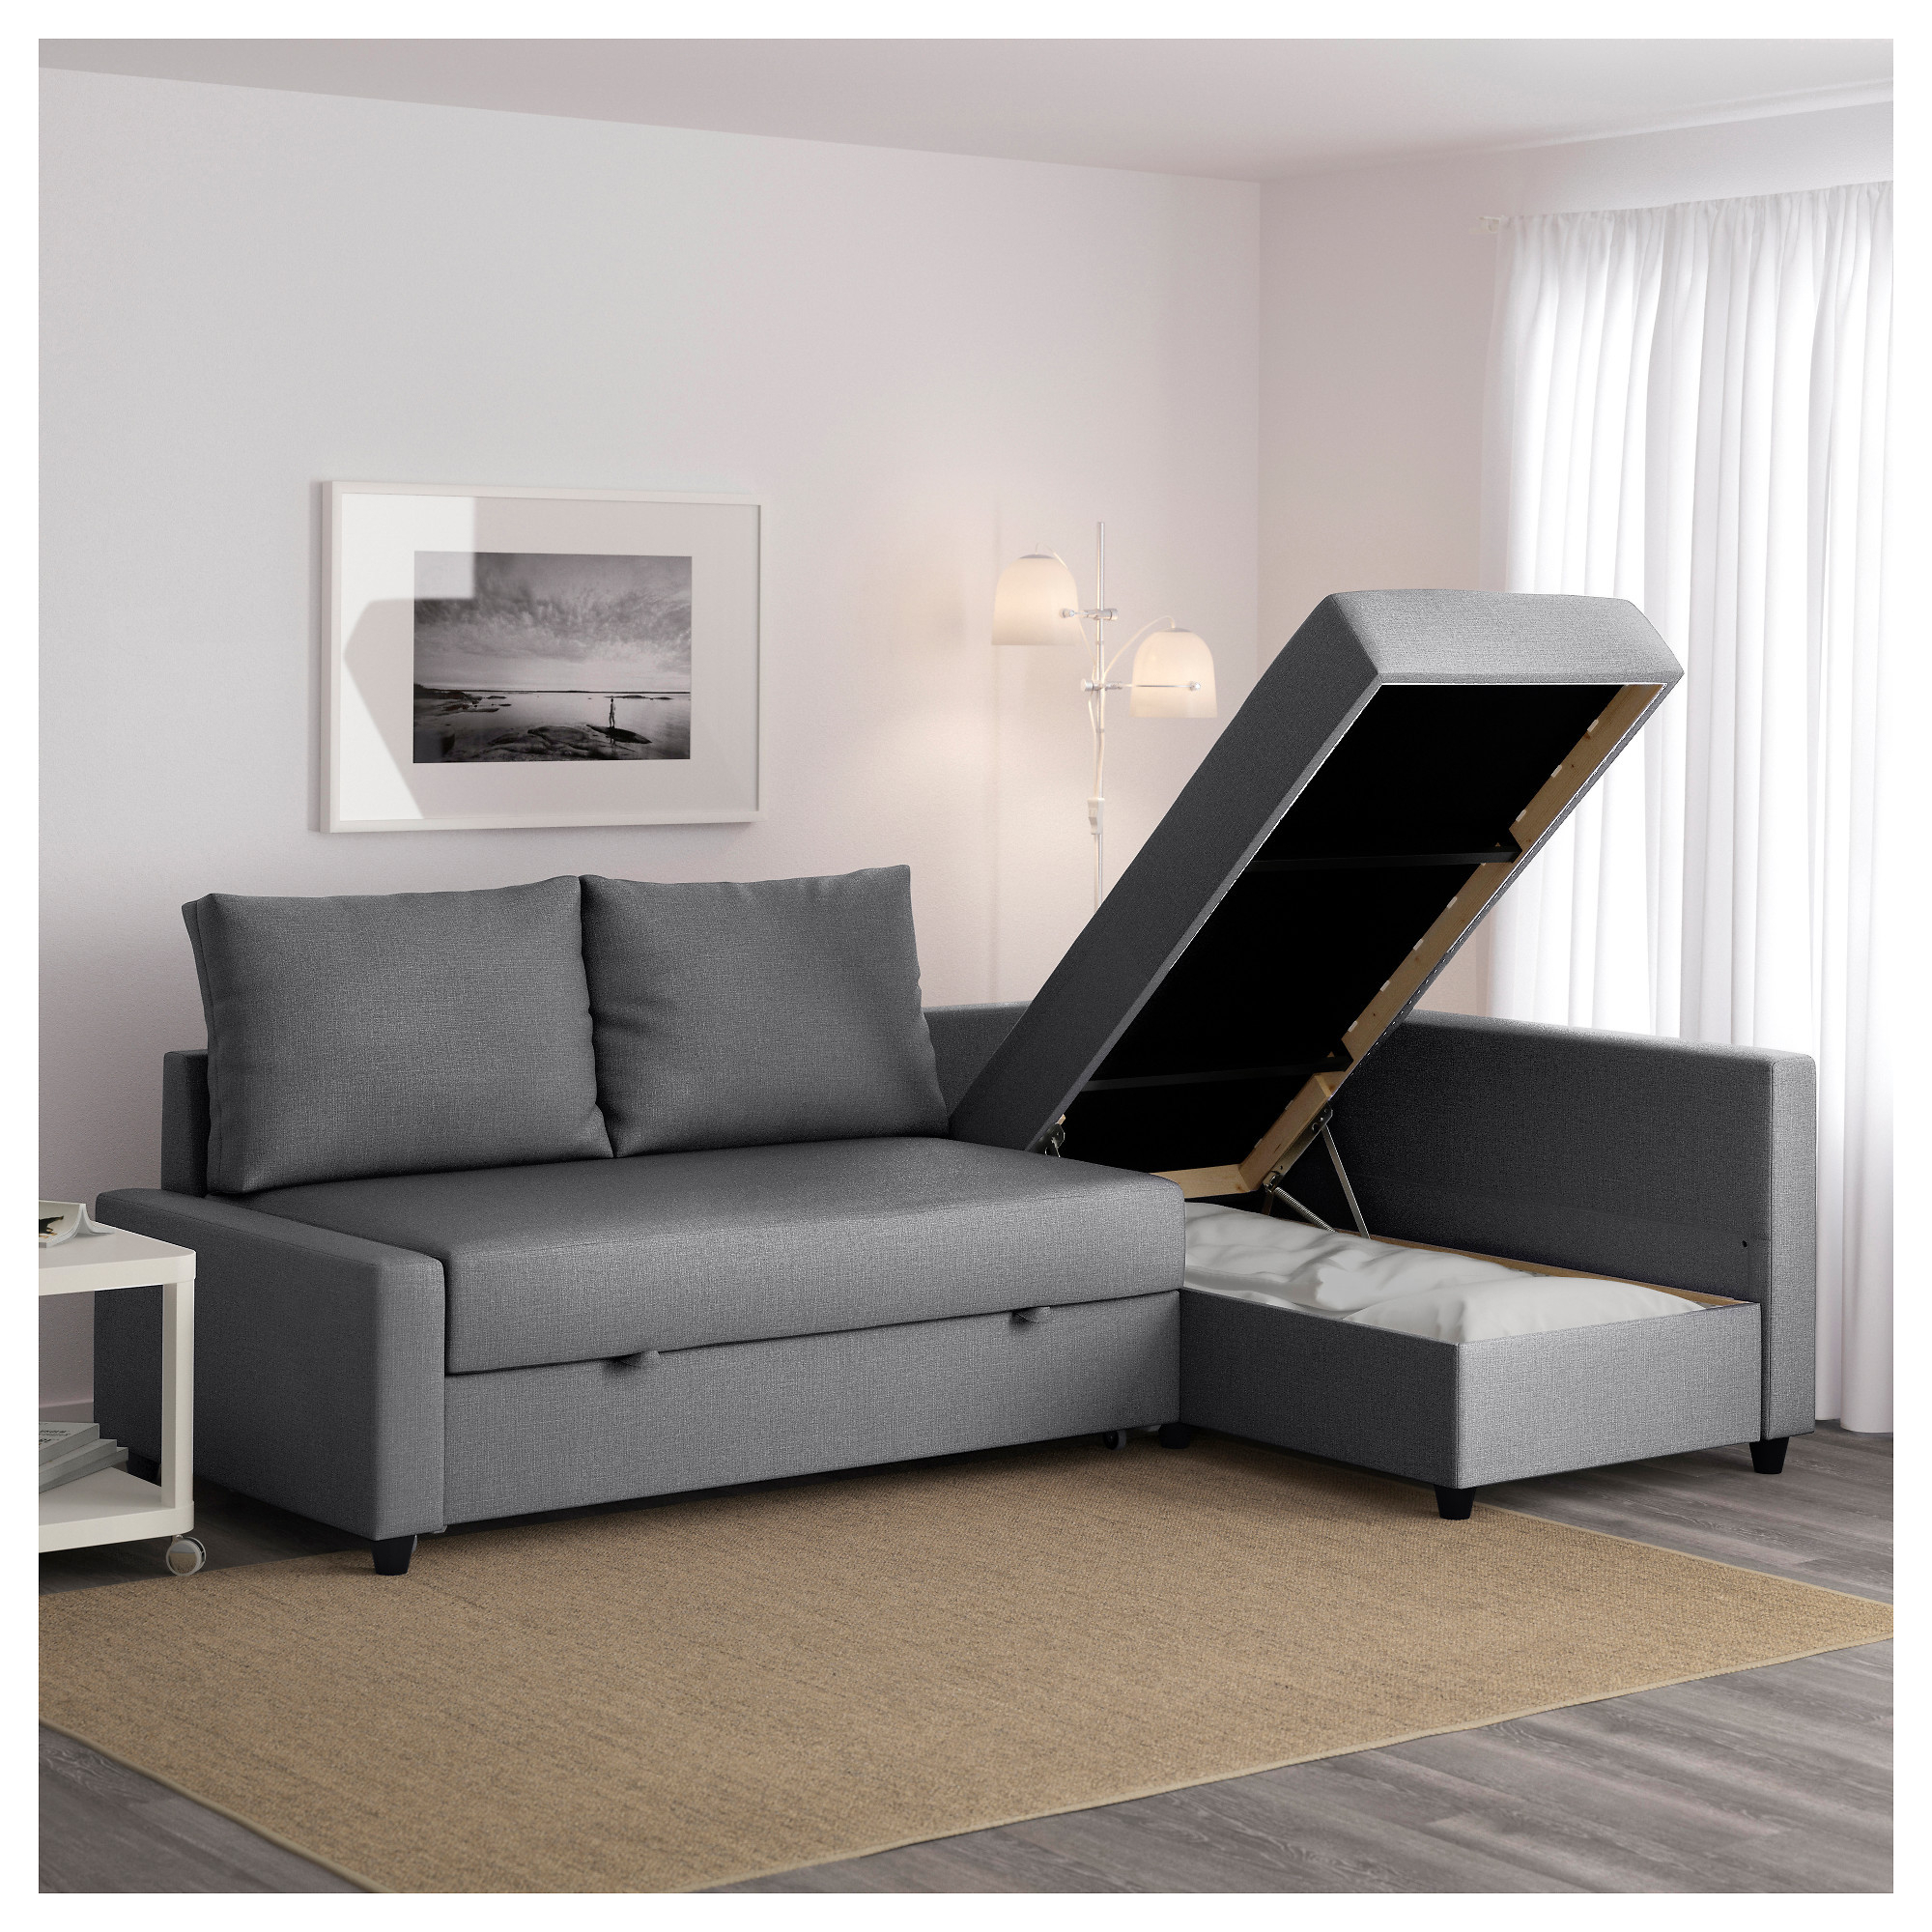 Recent Best Of Sleeper Chaise Sofa – Buildsimplehome Throughout Taren Reversible Sofa/chaise Sleeper Sectionals With Storage Ottoman (View 2 of 20)